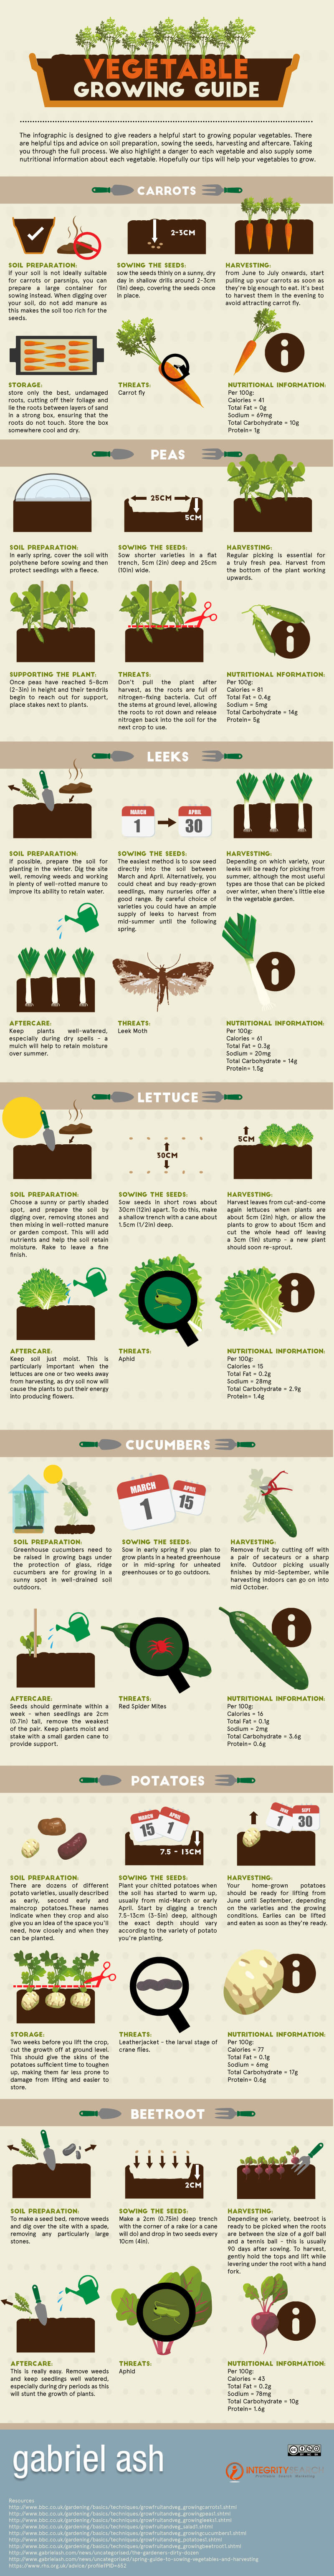 Growing-vegetables-infographic